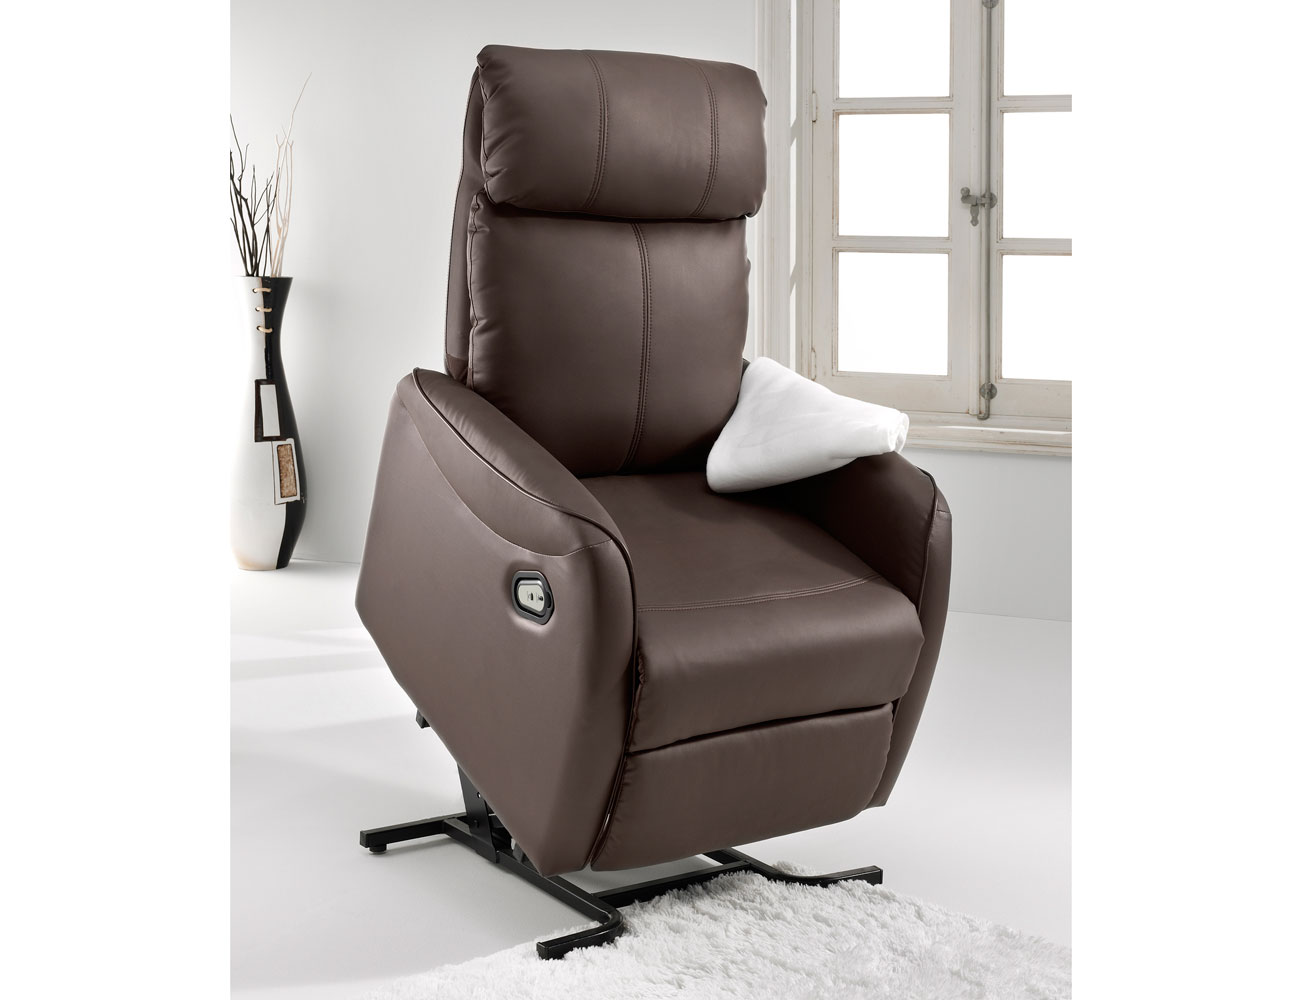 Sillon relax levanta personas power lift simil piel choco 31